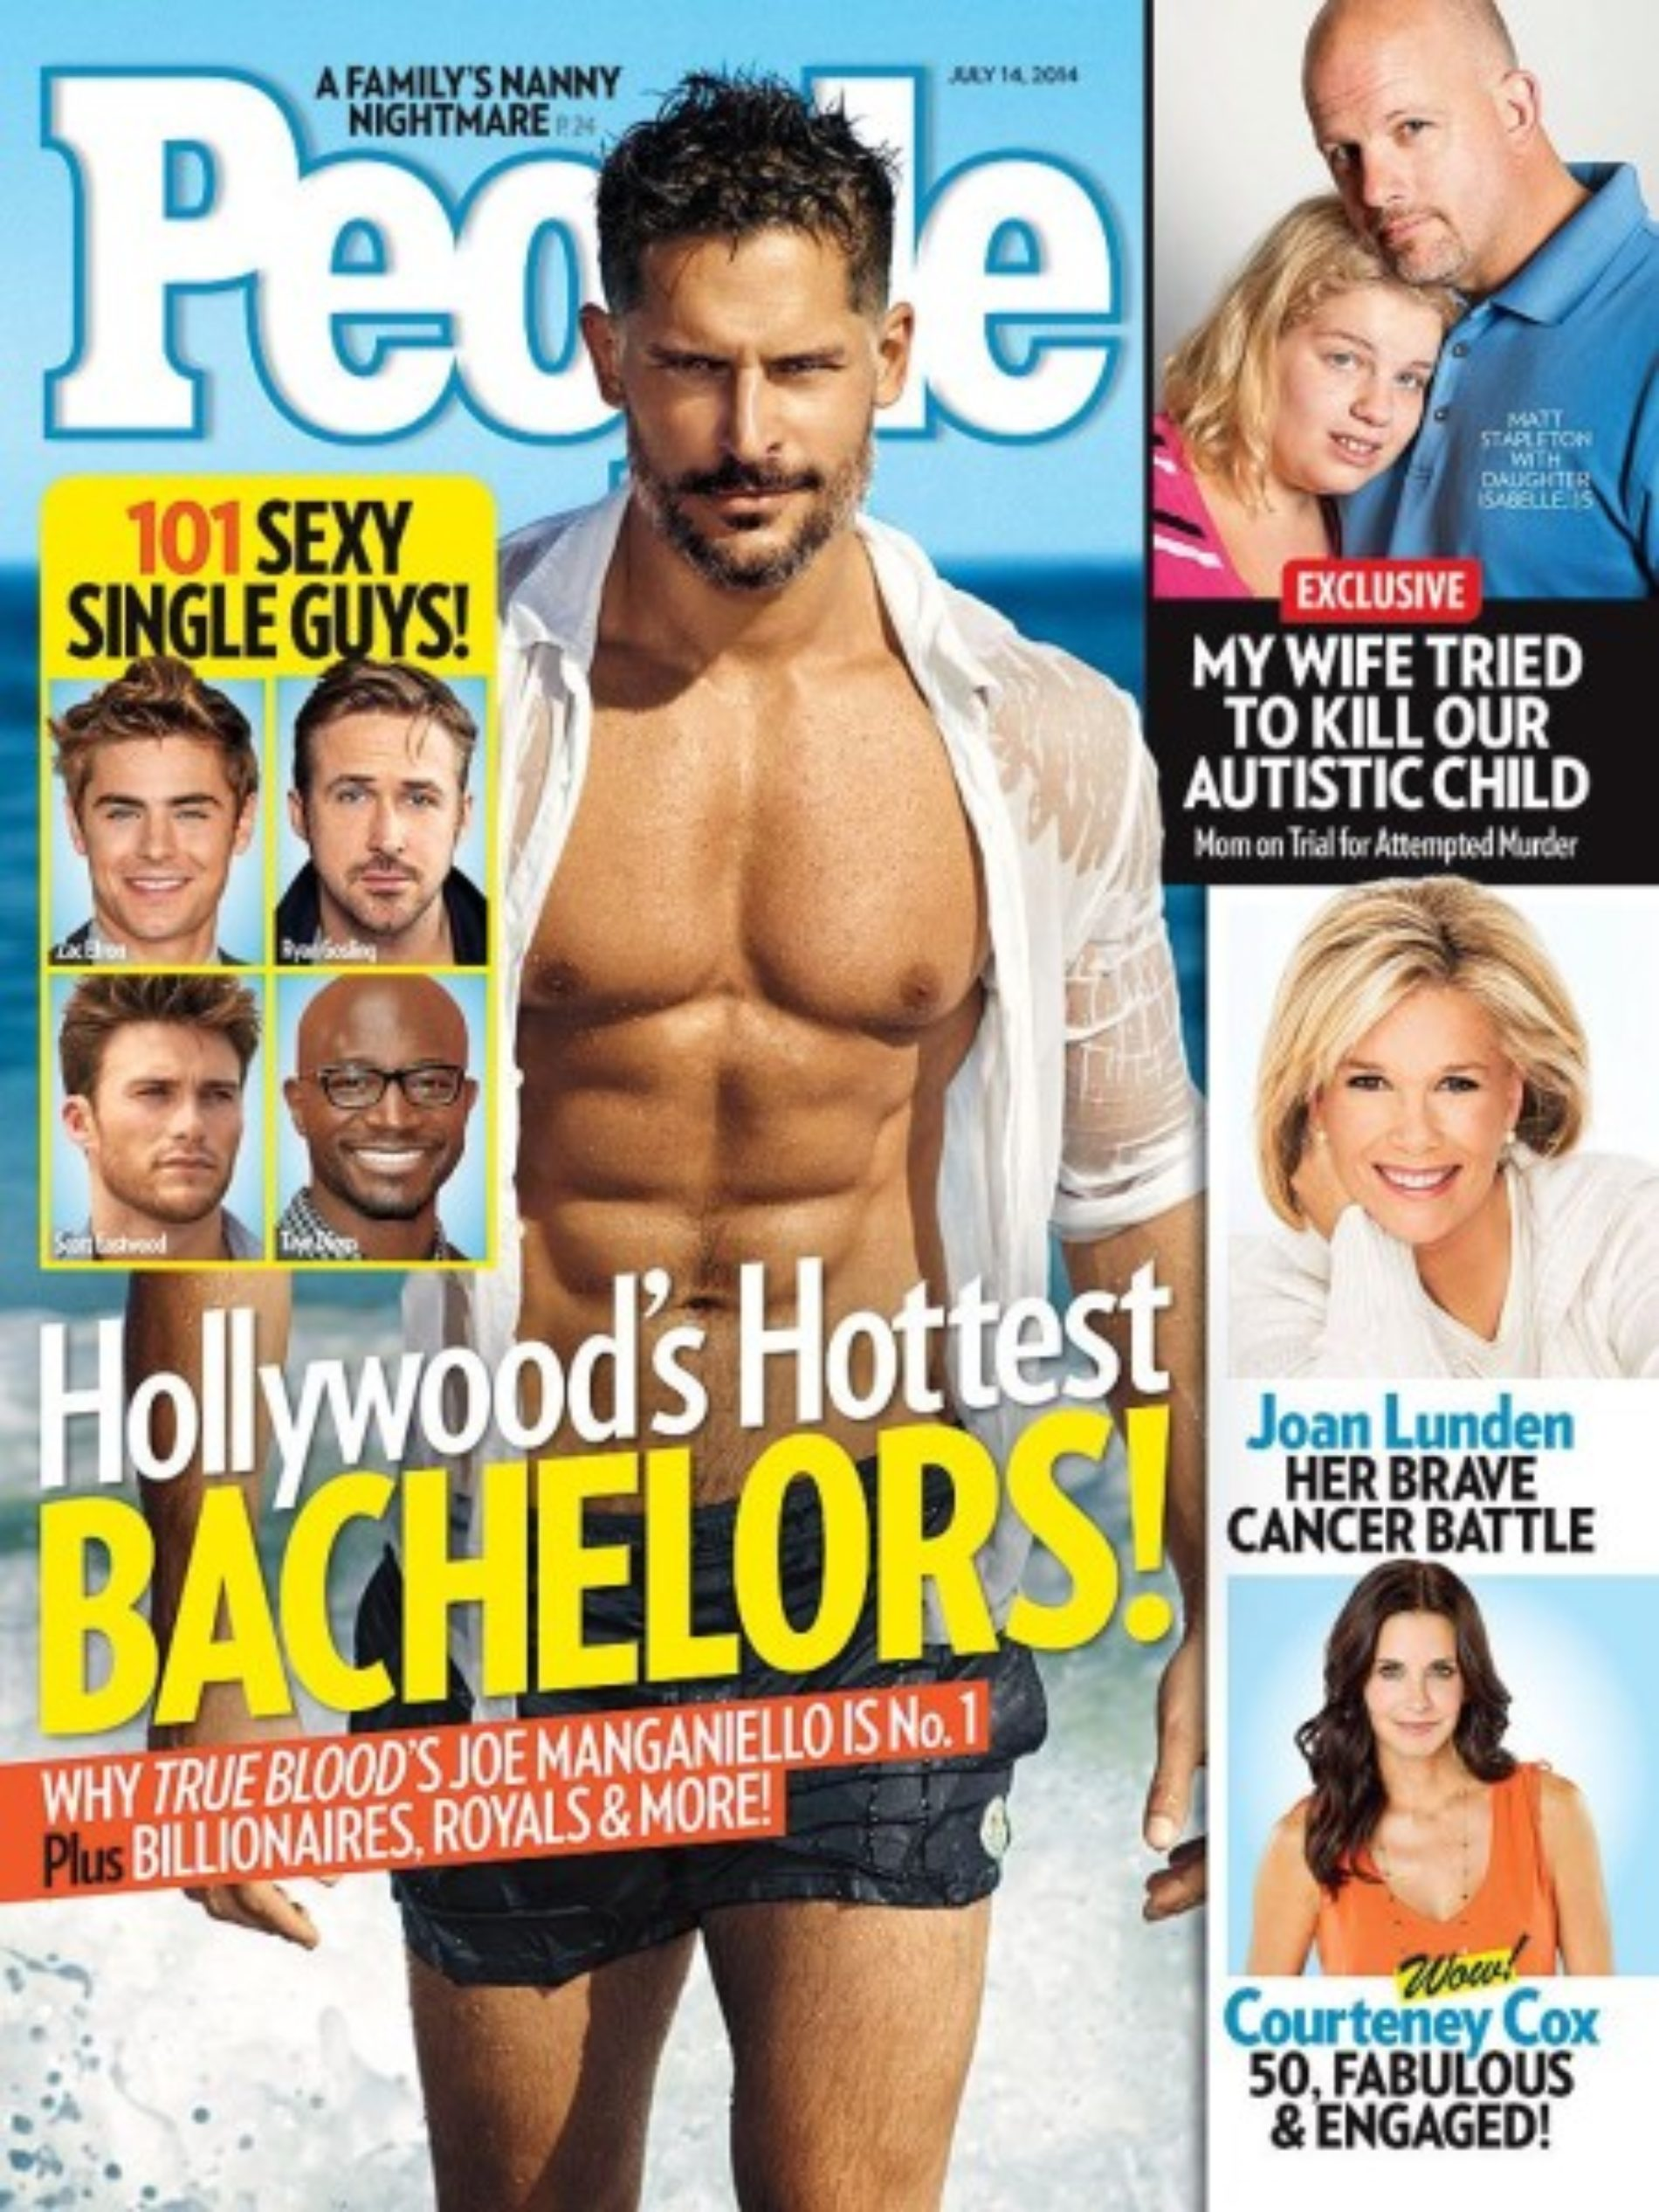 Actor Joe Manganiello named People Magazine's Hottest Bachelor